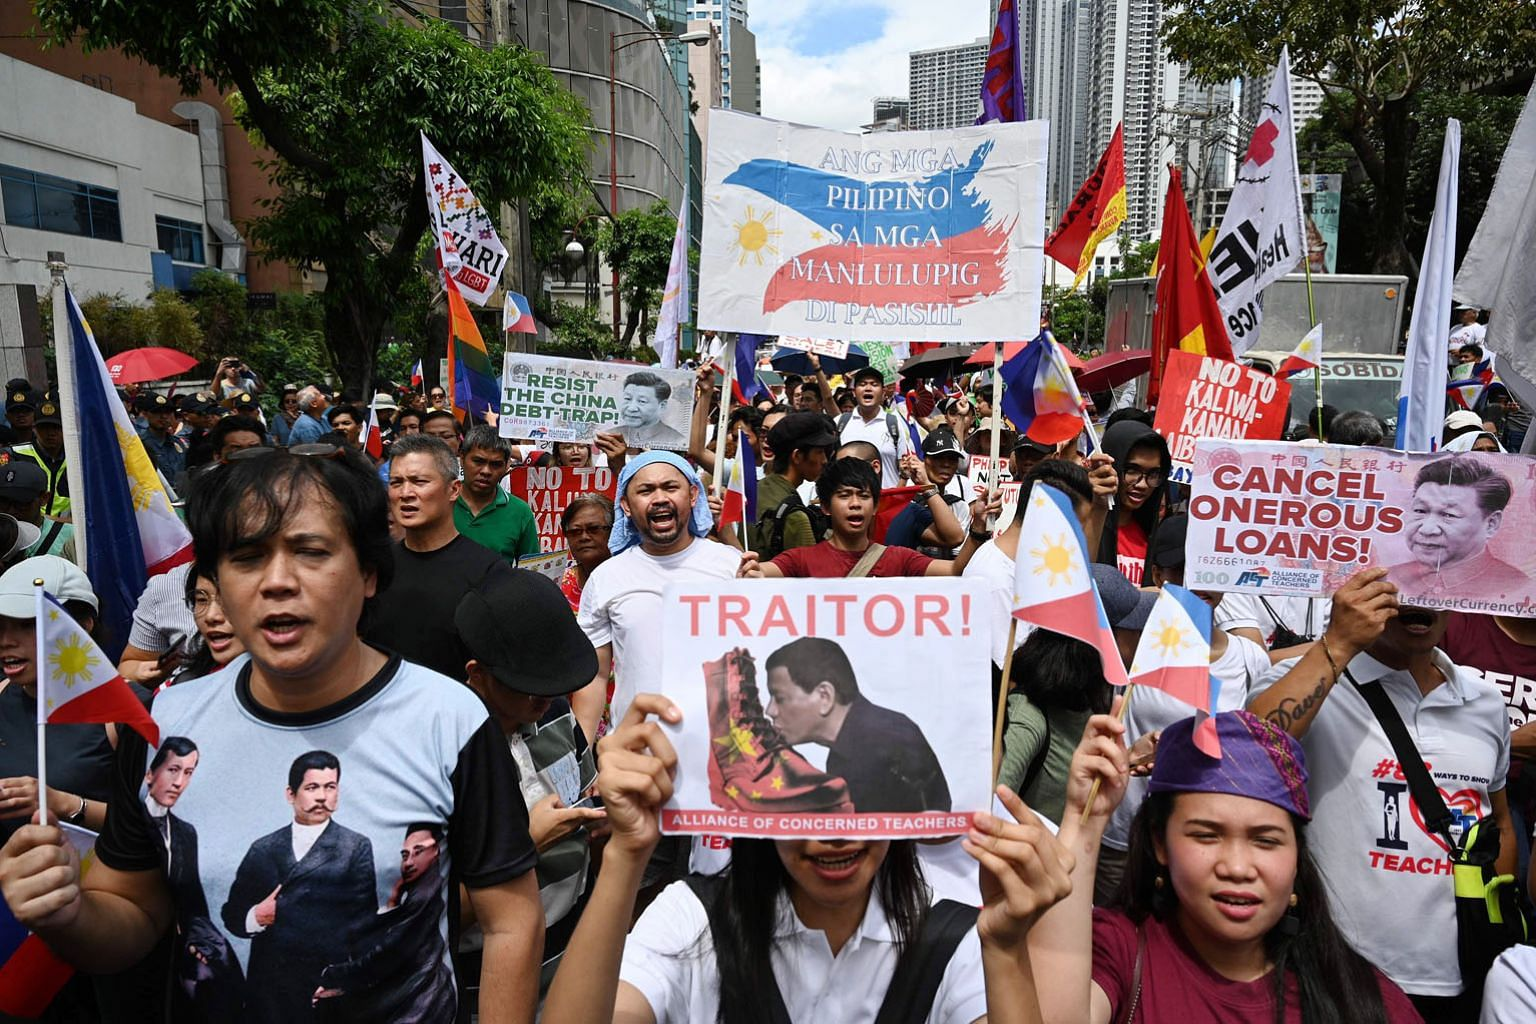 Filipinos in front of the Chinese consular office in the financial district of Manila on Tuesday, protesting against China's growing sway in the Philippines as tensions rise over Beijing's presence in the disputed South China Sea. Over the past three